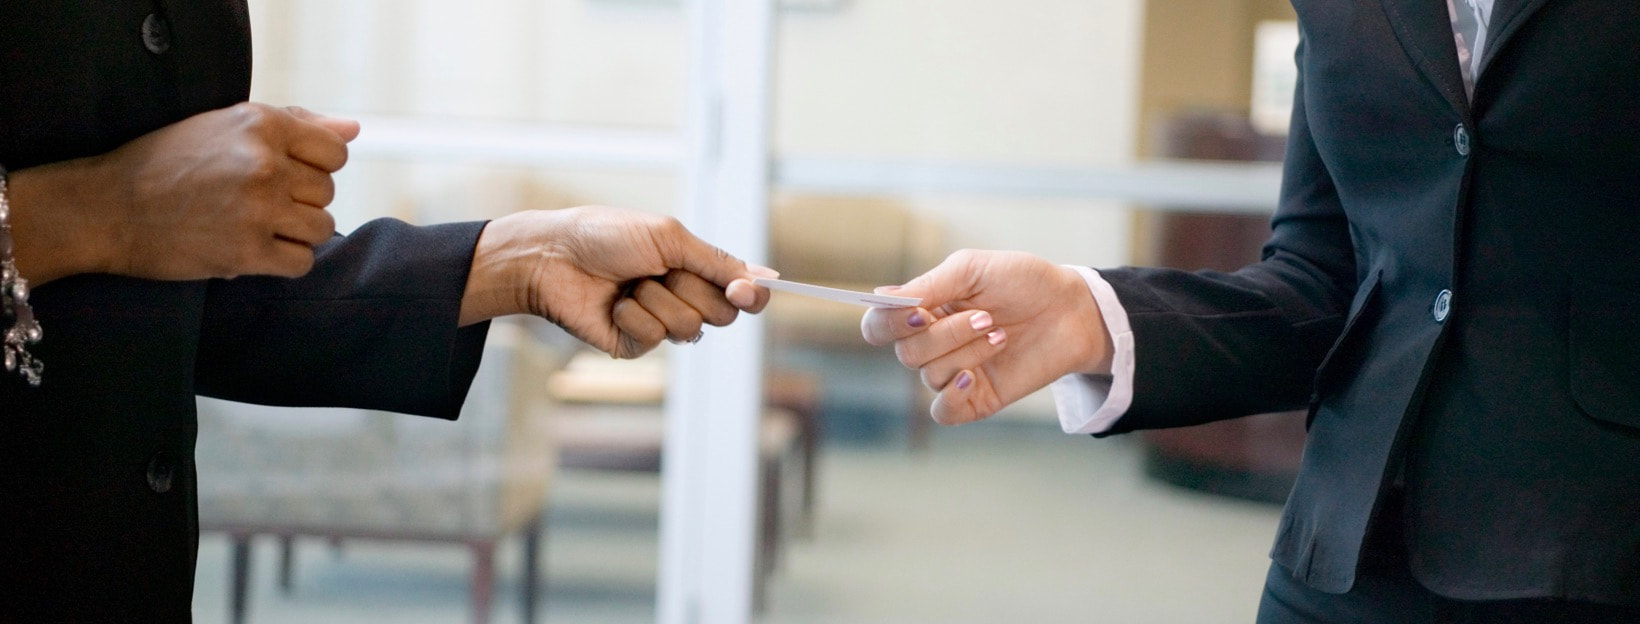 Women exchanging business cards